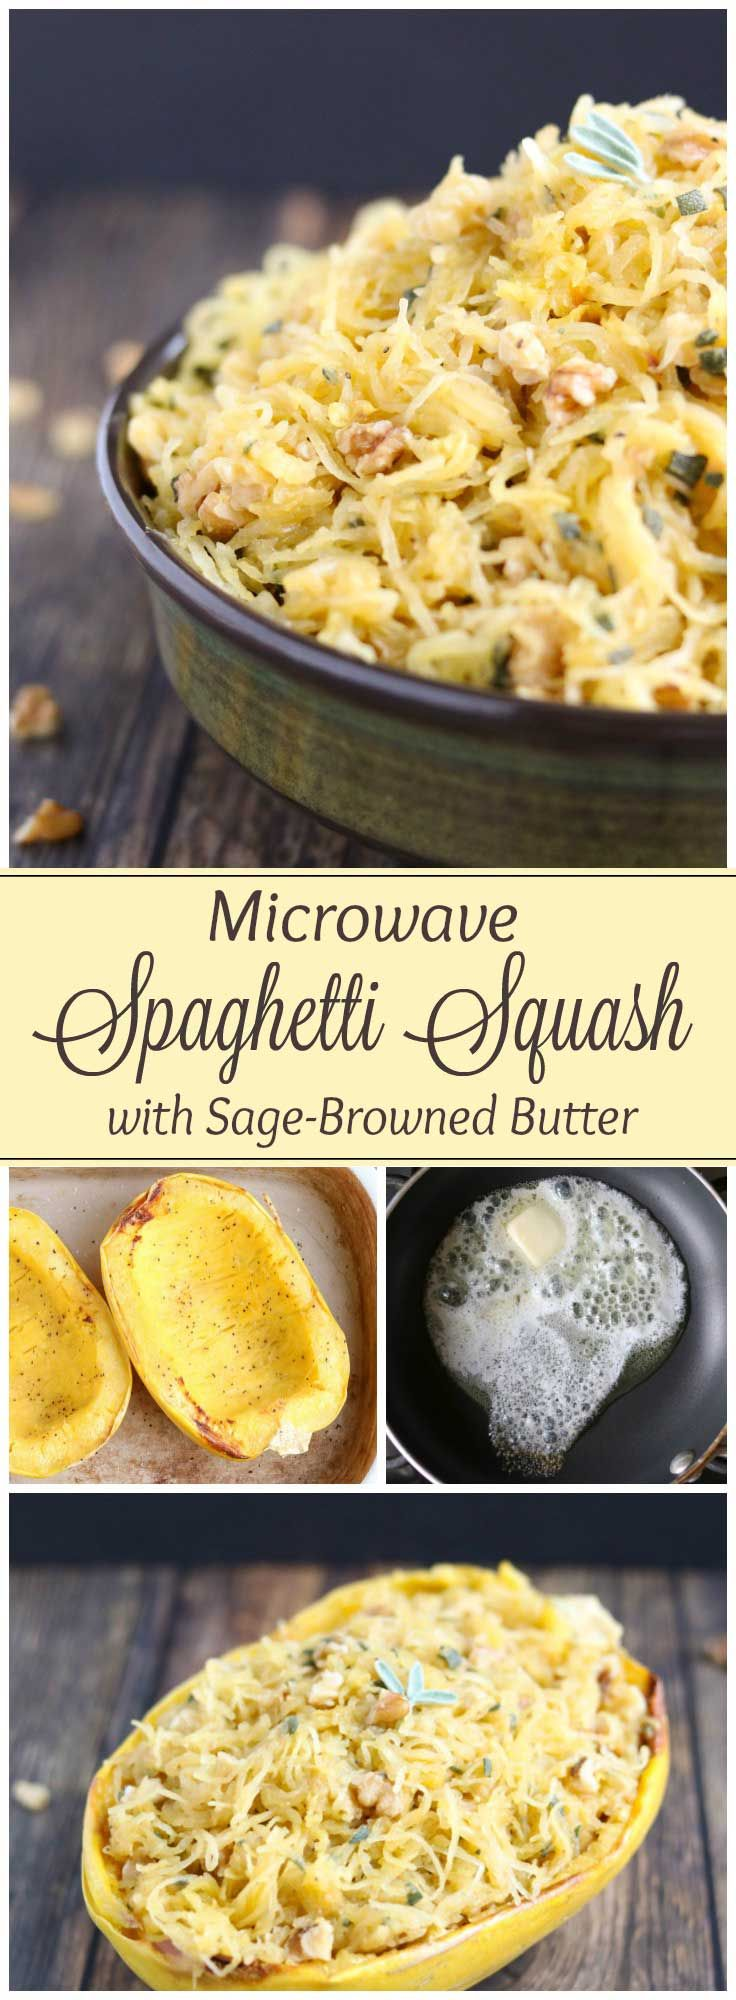 So much faster than oven-roasting spaghetti squash! Easy enough for weeknights, but impressive enough for Thanksgiving dinner and Christmas! Rich browned butter with crunchy, toasted walnuts and fragrant sage - amazing! With just 5 ingredients, this easy spaghetti squash recipe is so simple! Lots of easy tips, too – toasting nuts, browning butter, cooking spaghetti squash perfectly, and stuffed spaghetti squash! | www.TwoHealthyKitchens.com